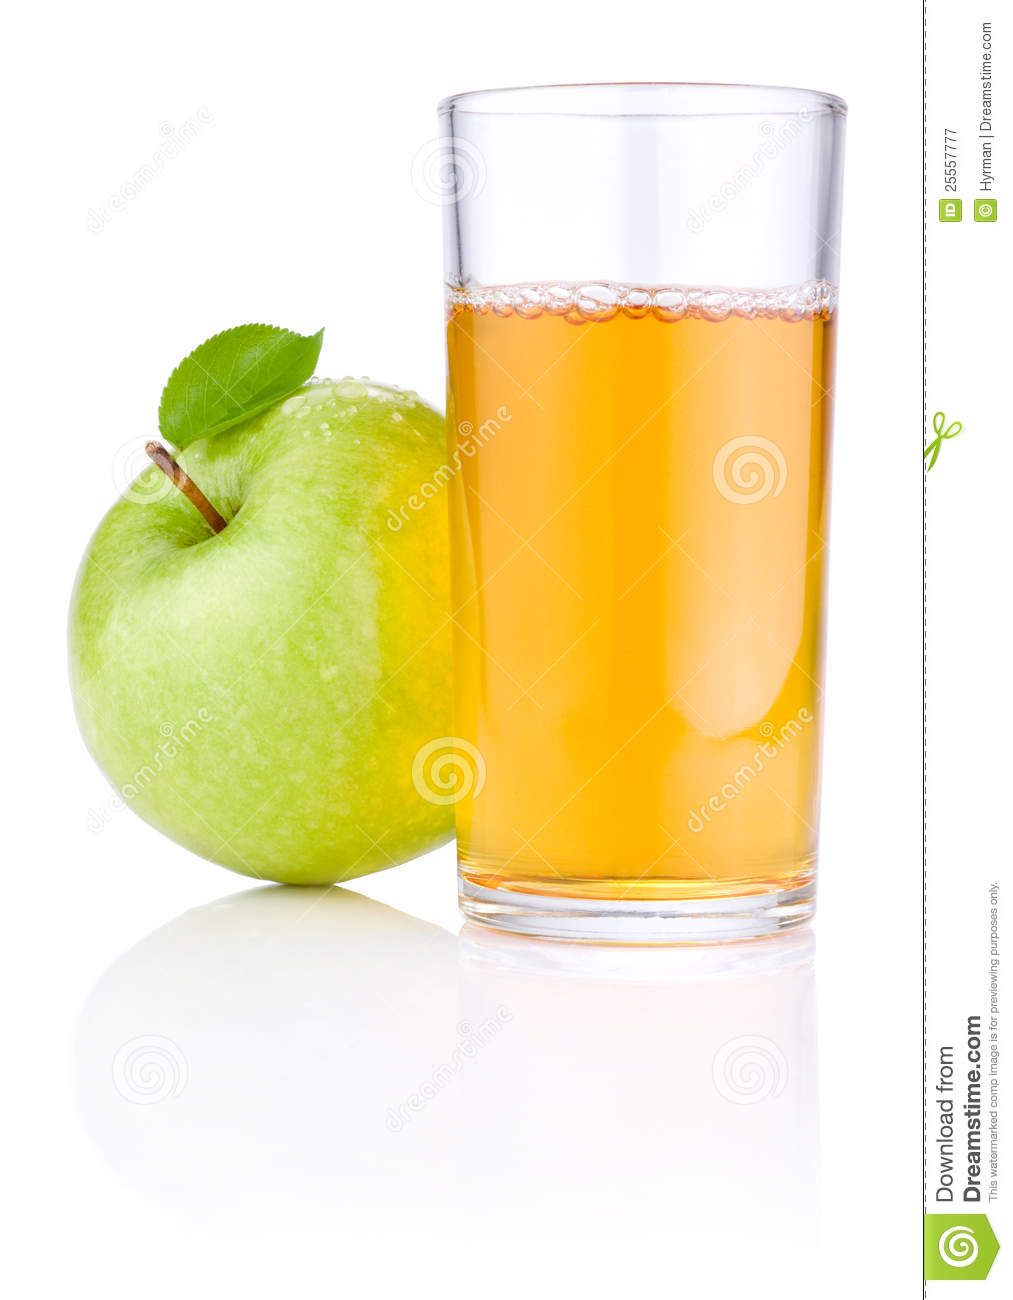 how to get juice from apples